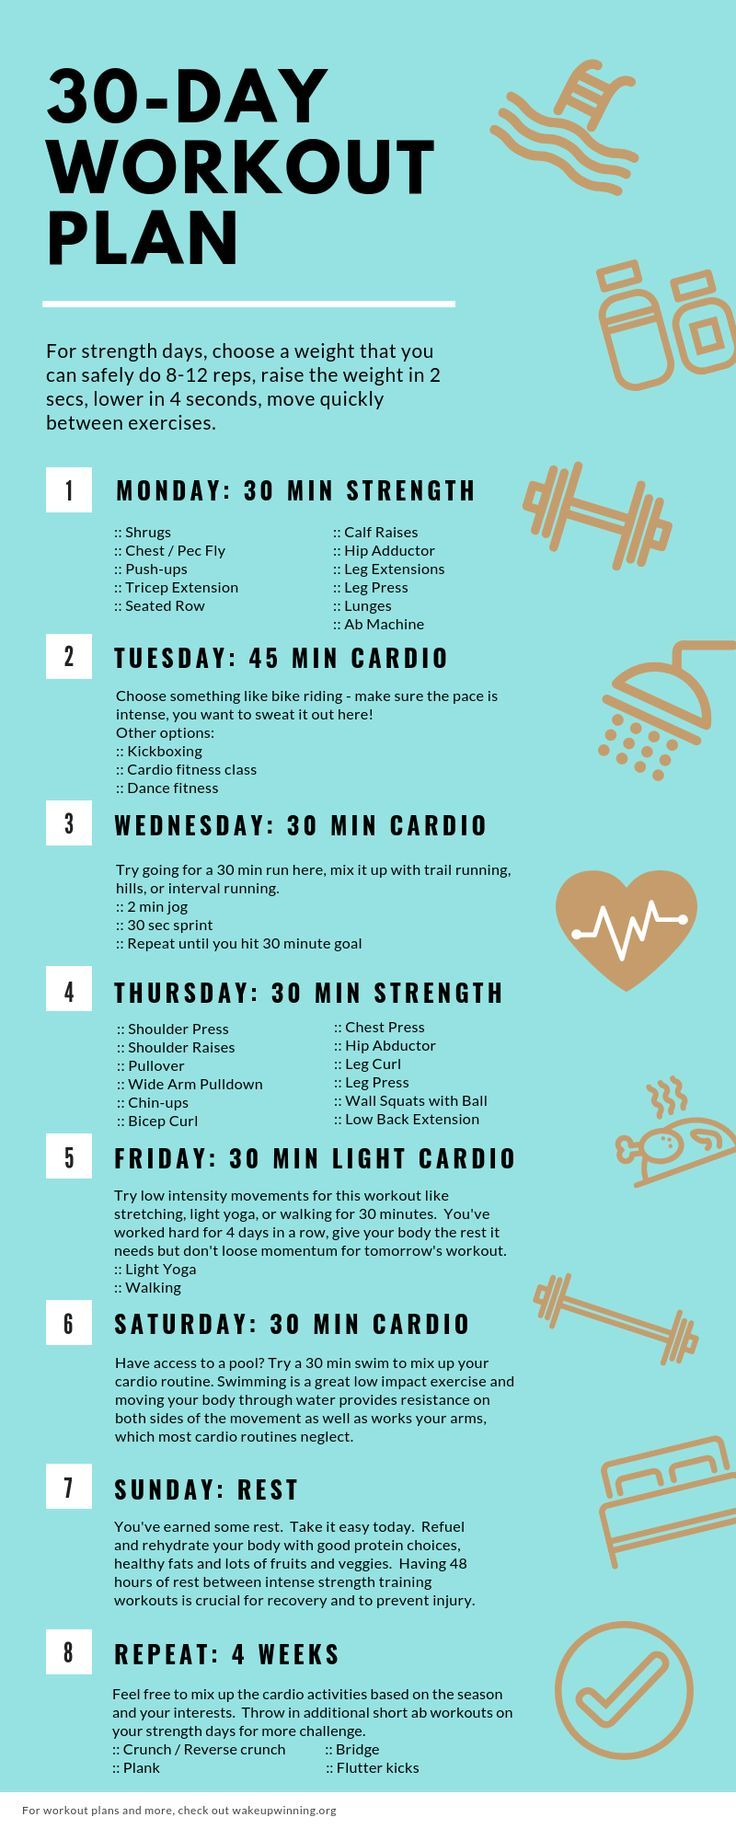 30-Day Fat Loss Workout Plan for Busy Moms #workoutplans